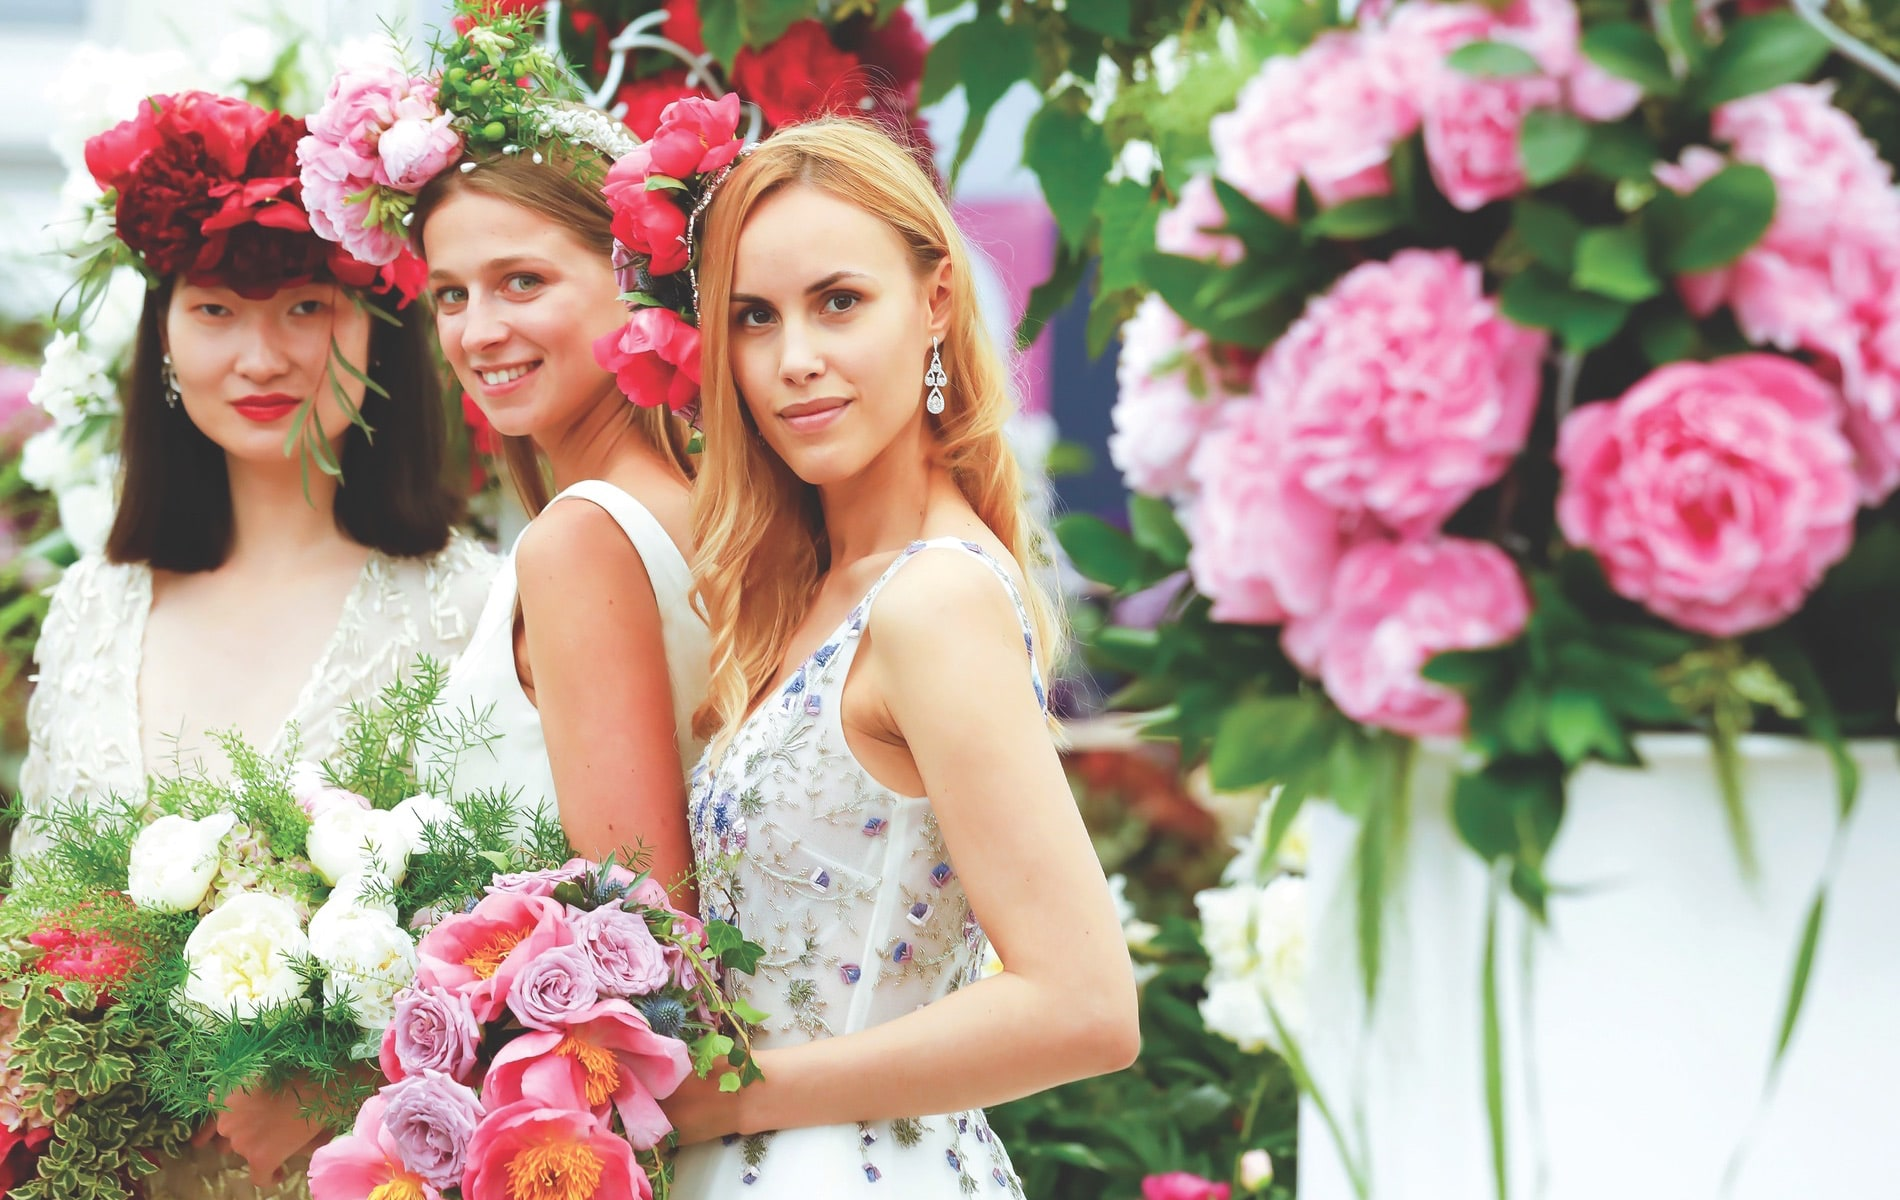 Models wear bridal designs by Alan Hannah for Primrose Hall Nursery's Love & Romance exhibition during press day at the RHS Chelsea Flower Show 2018 in London.